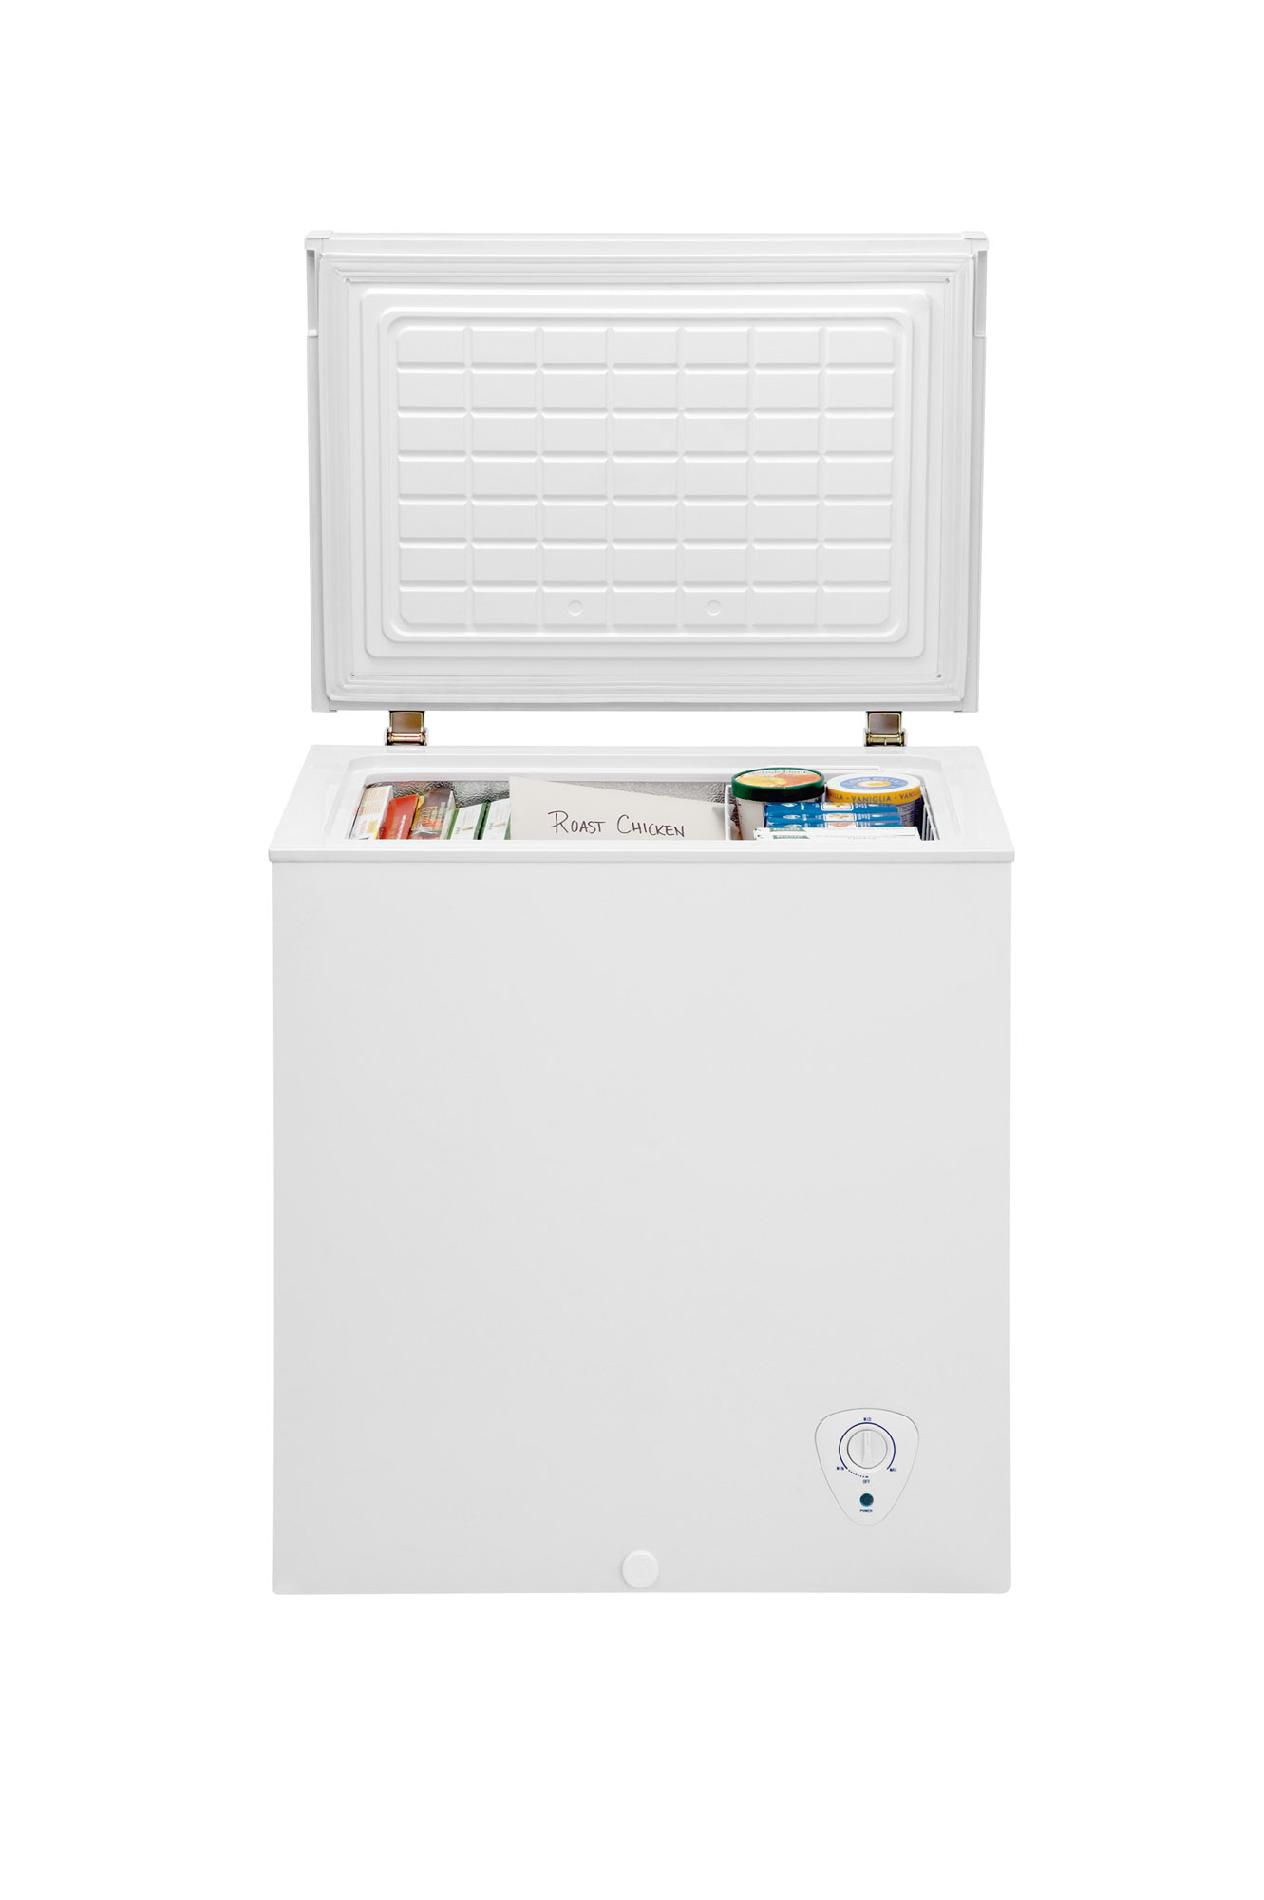 Kenmore 5.1 cu. ft. Chest Freezer - White